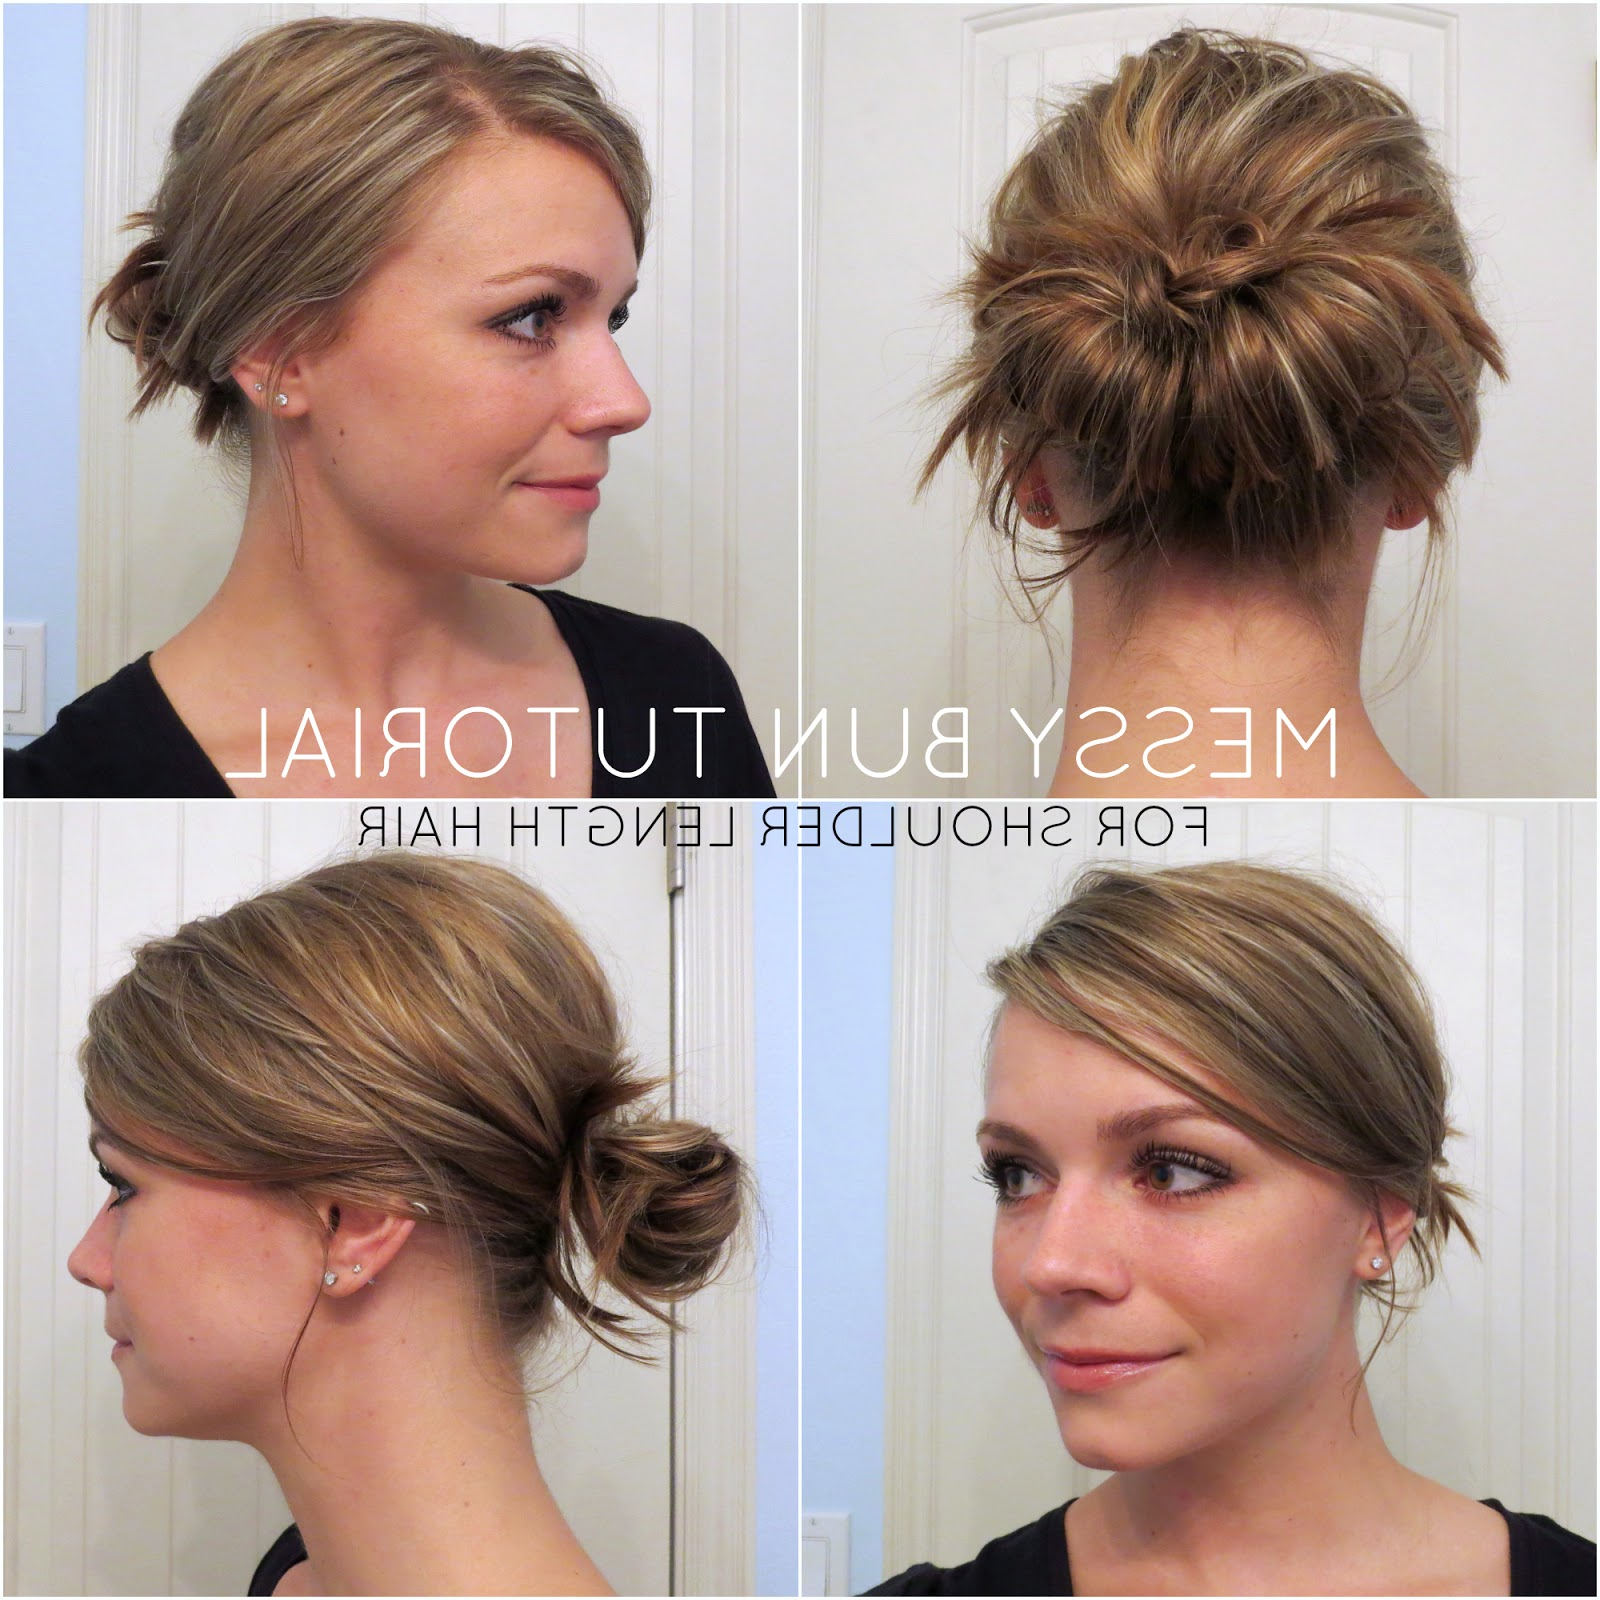 Bye Bye Beehive │ A Hairstyle Blog: Messy Bun For Shoulder Length Hair Throughout Short Messy Hairstyles With Twists (View 5 of 20)